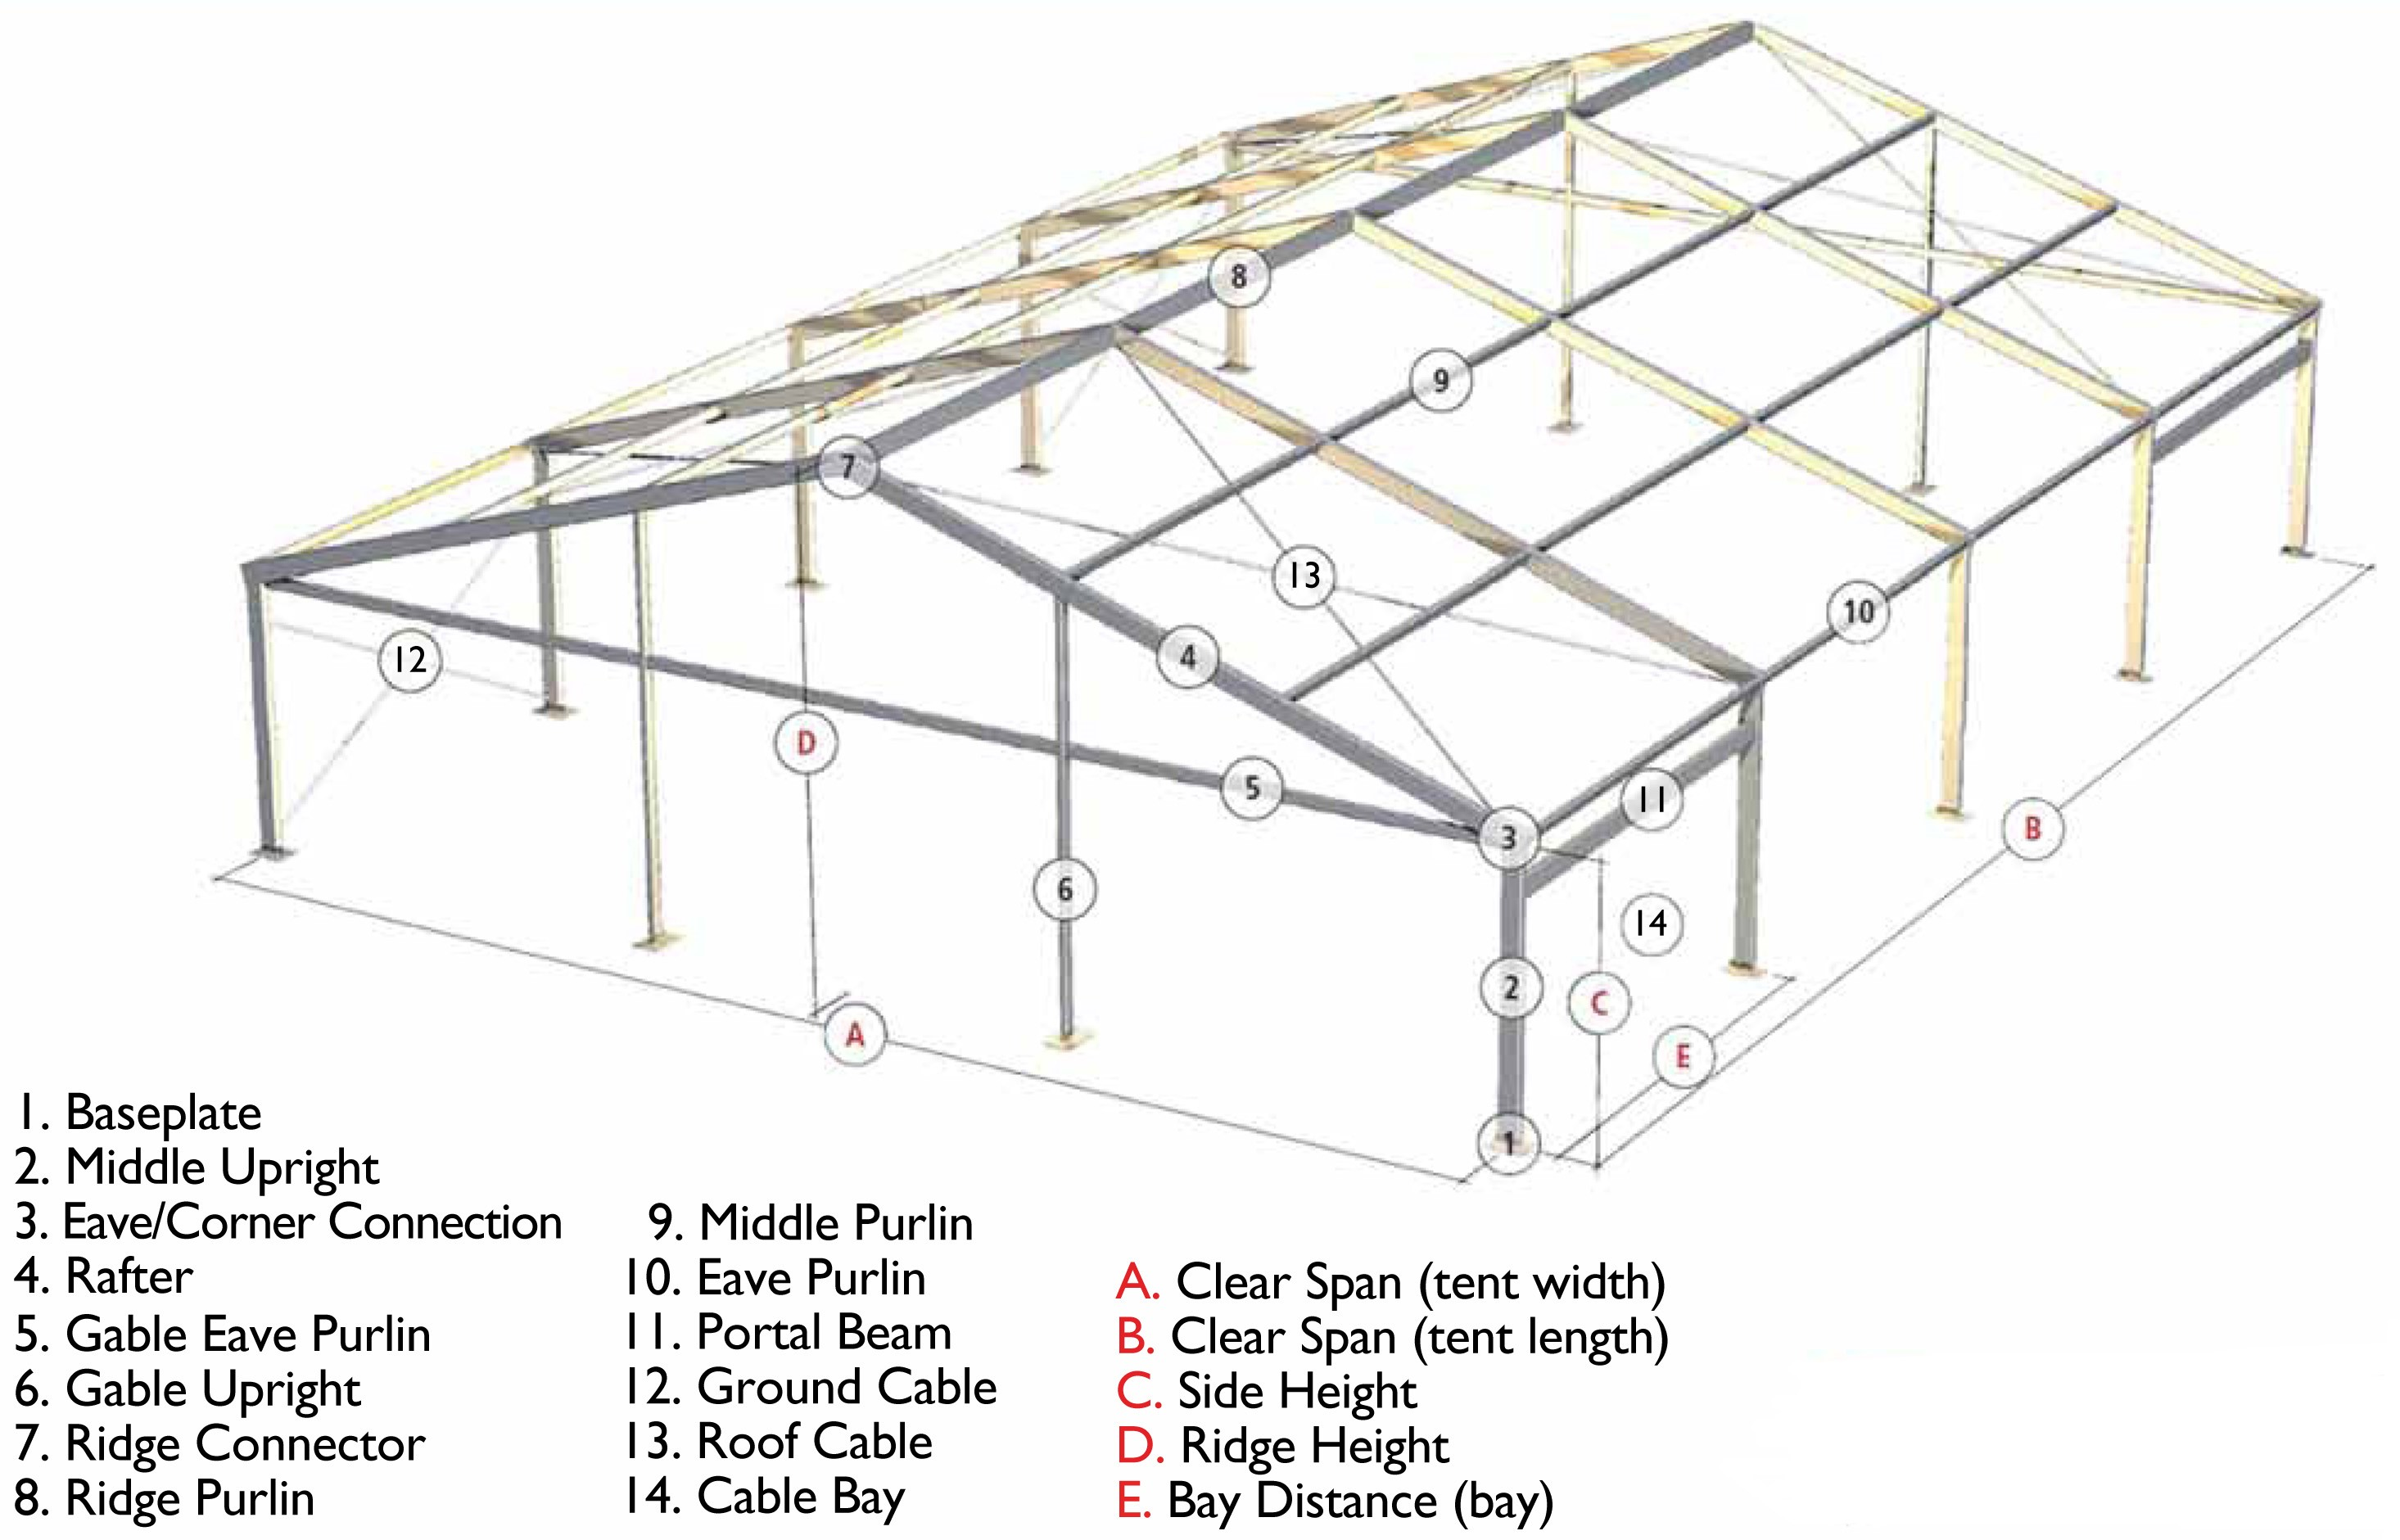 special-event-structure-maintenance.jpg